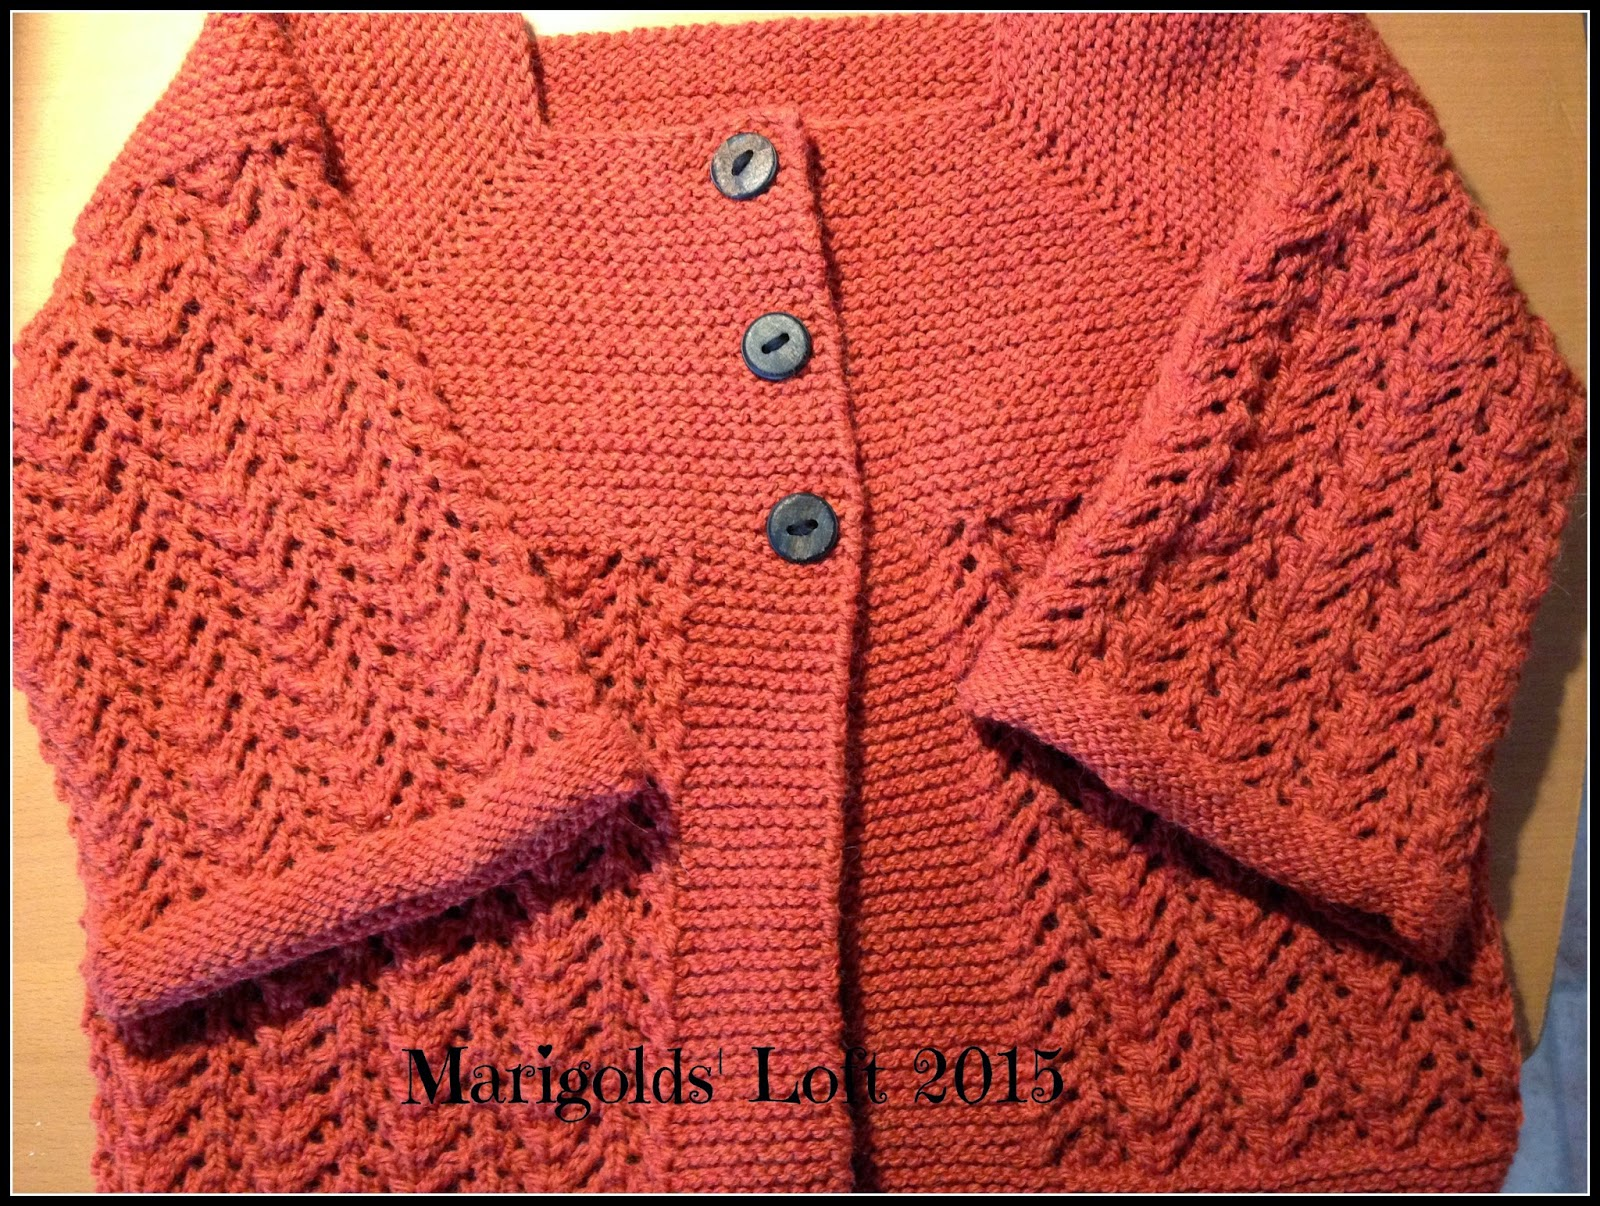 Ravelry February Lady Sweater